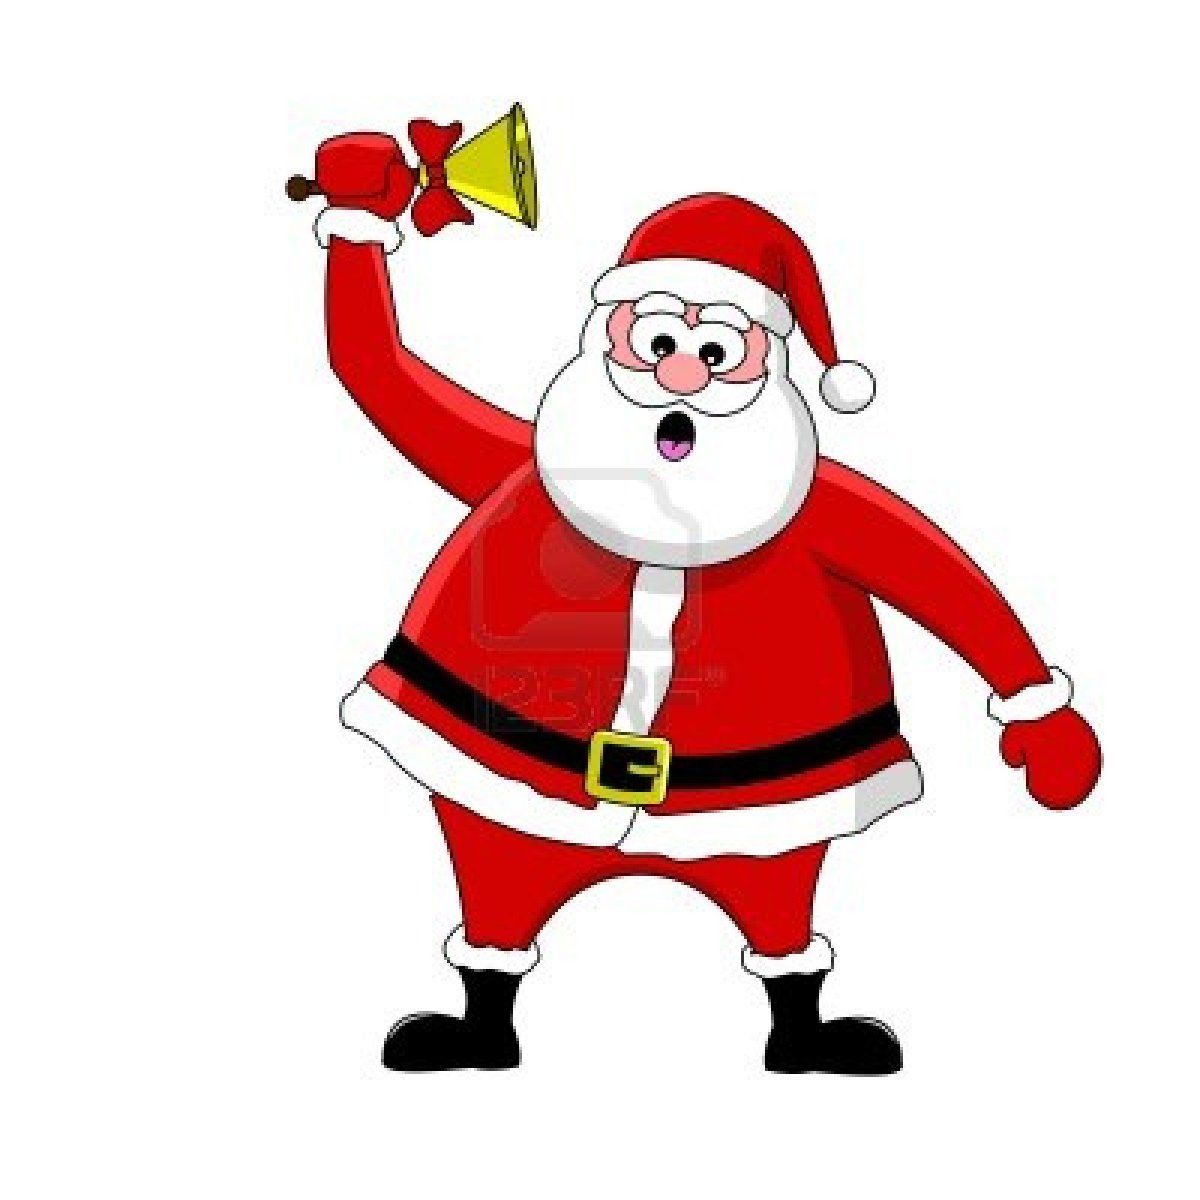 Animated clipart santa claus vector transparent library Animated Santa Claus Images | Merry Christmas | Santa claus images ... vector transparent library